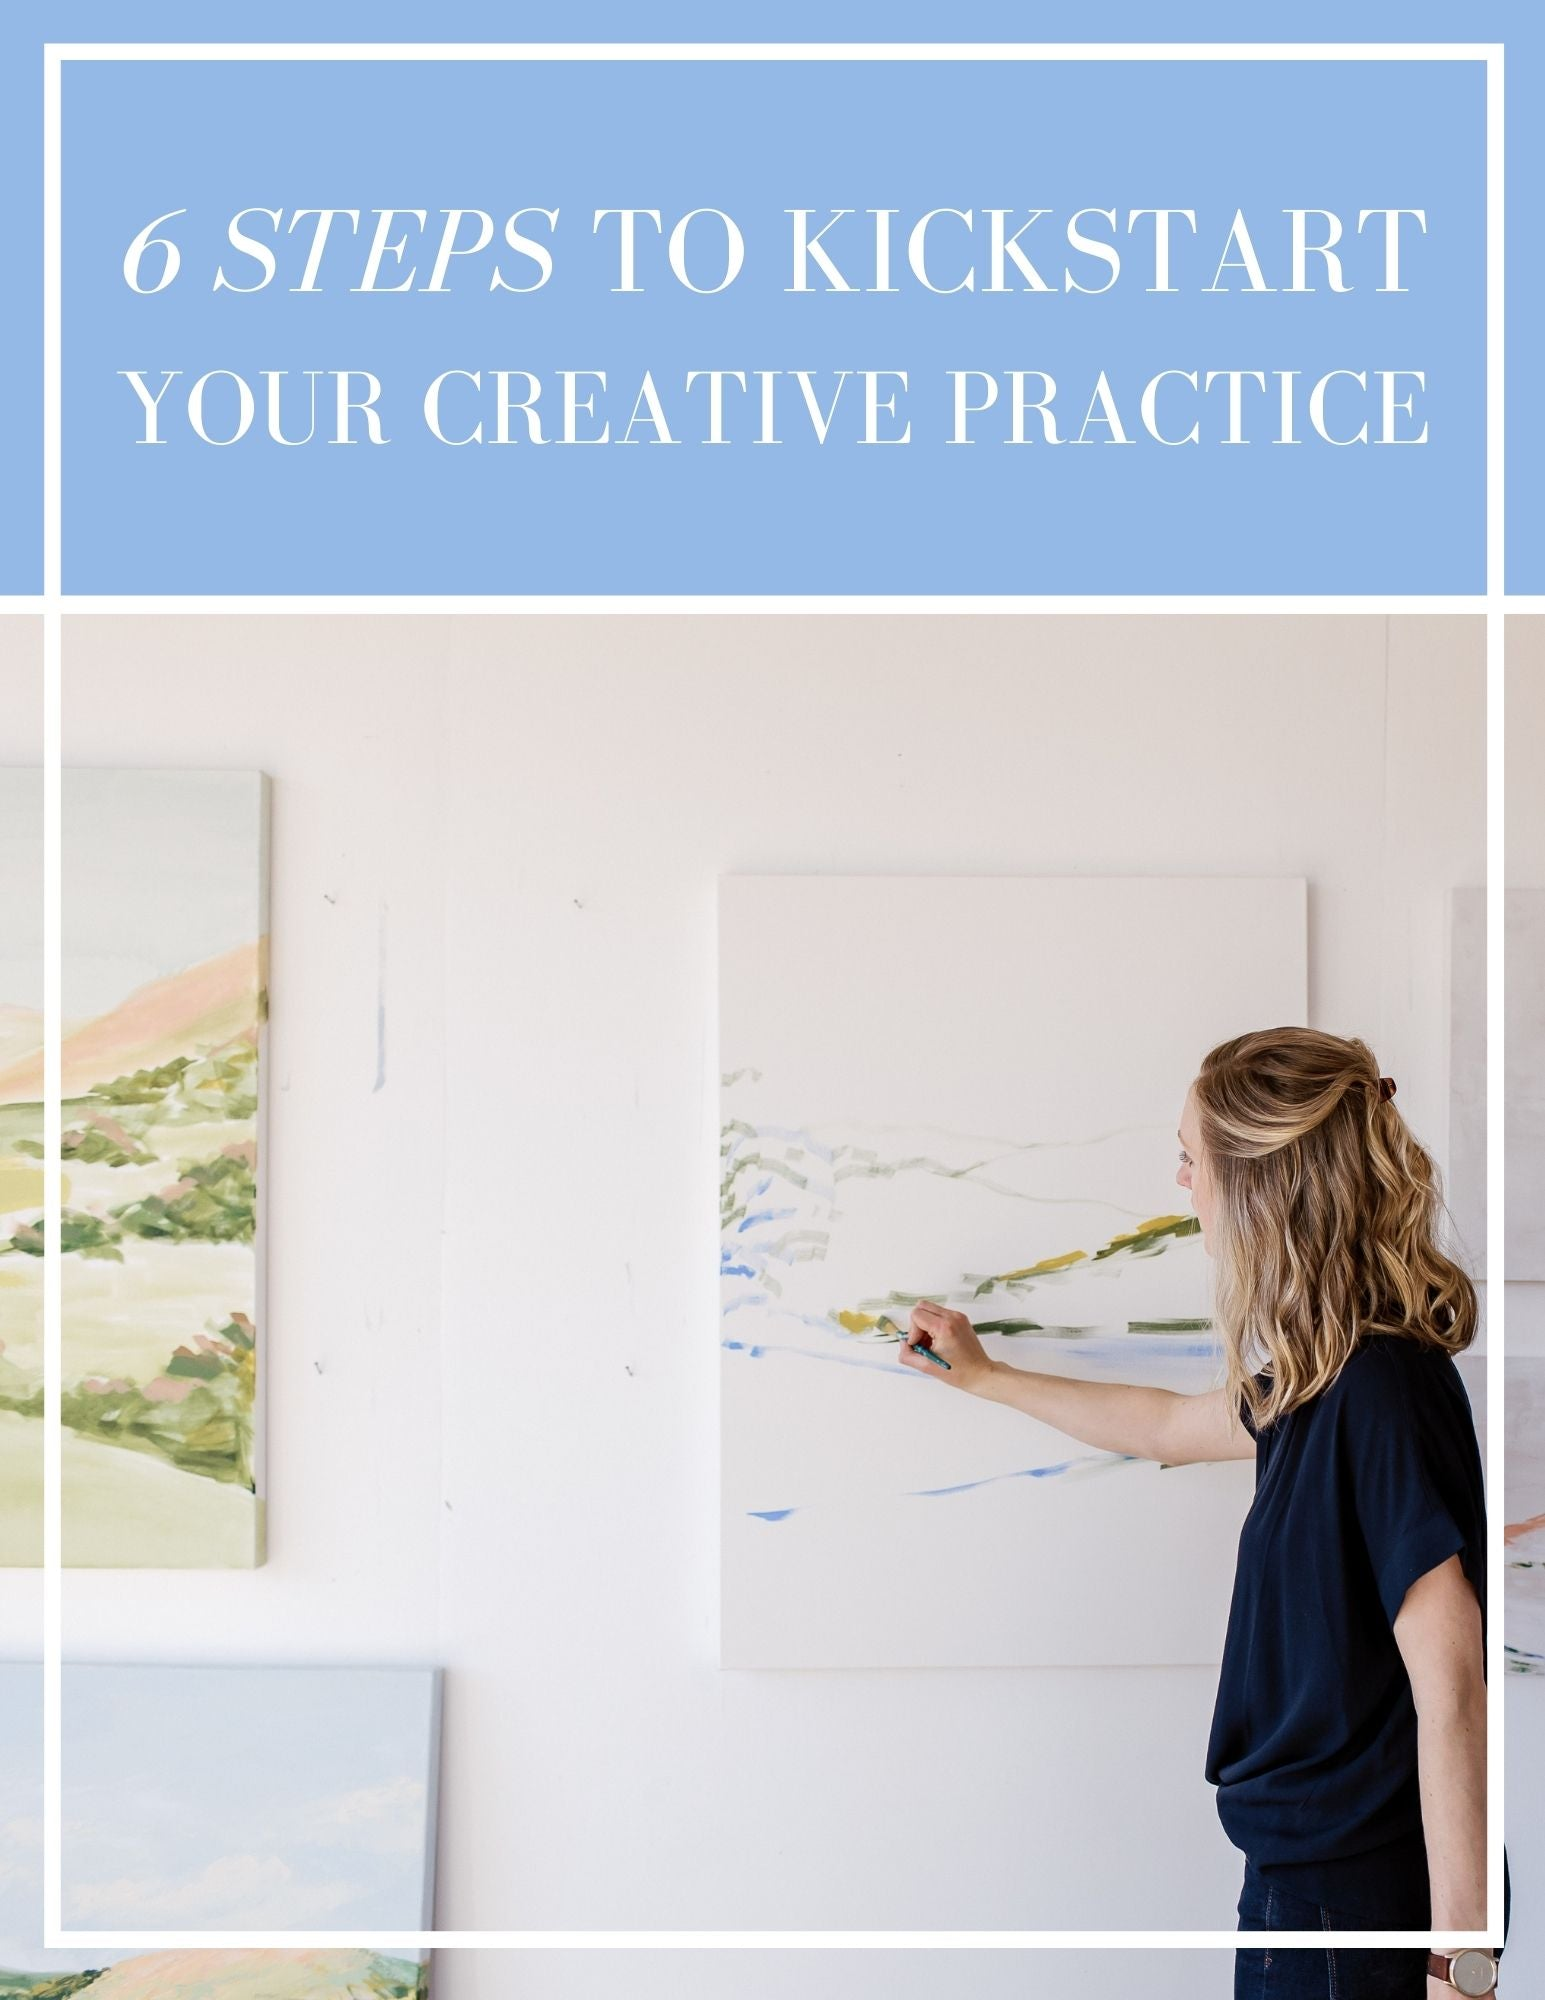 Cover image to the PDF Guide: 6 Steps to Kickstart Your Creative Practice